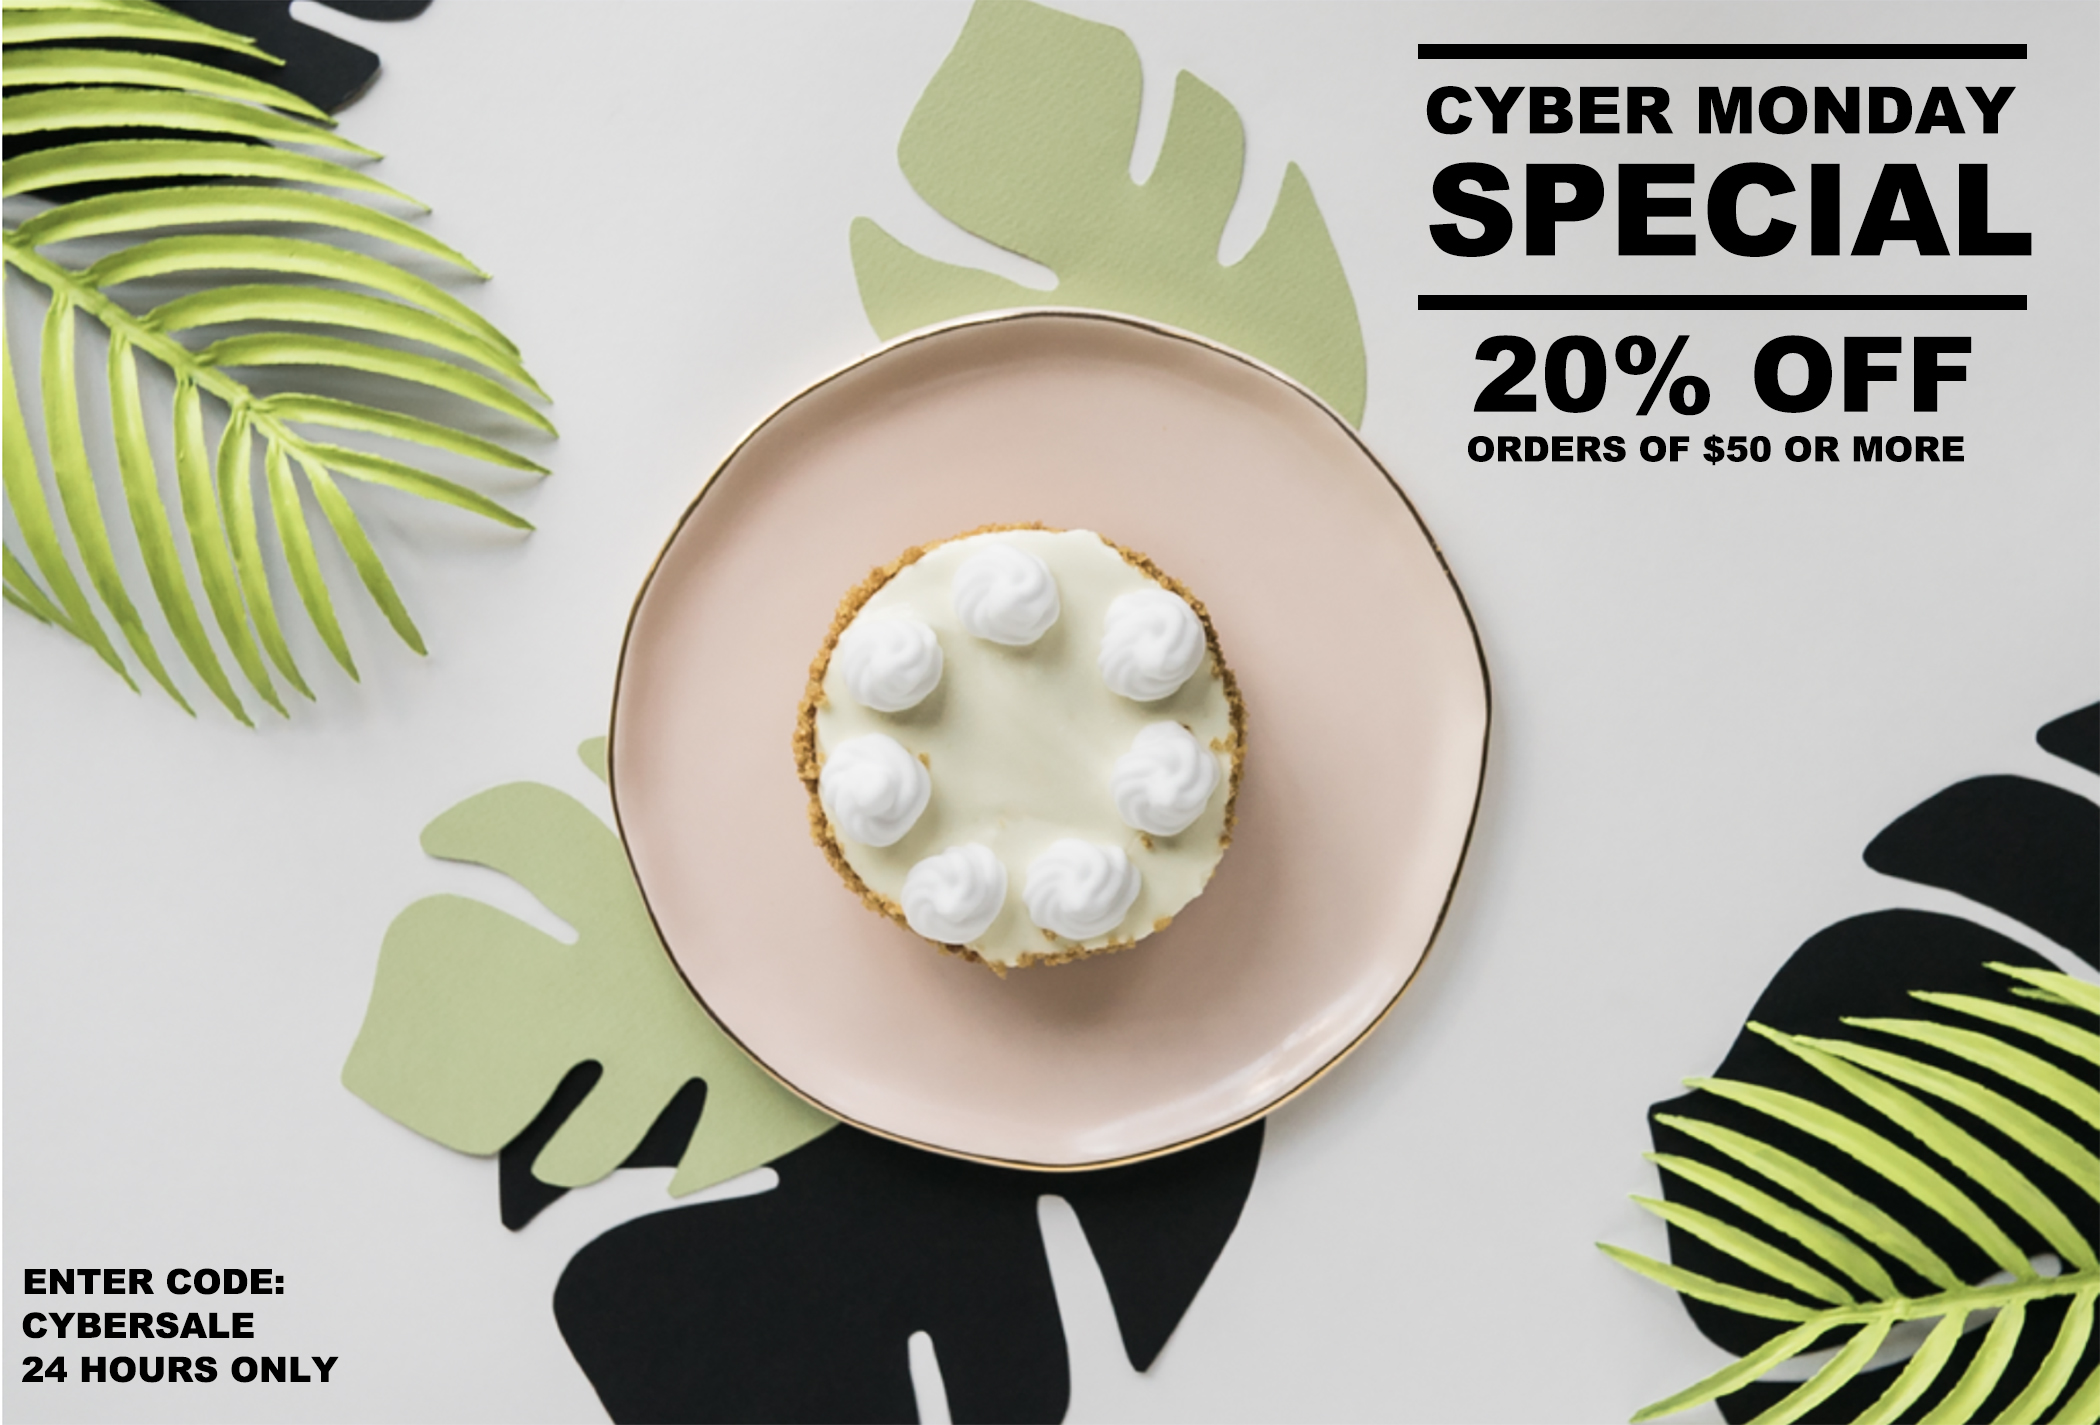 CYBER MONDAY PIES